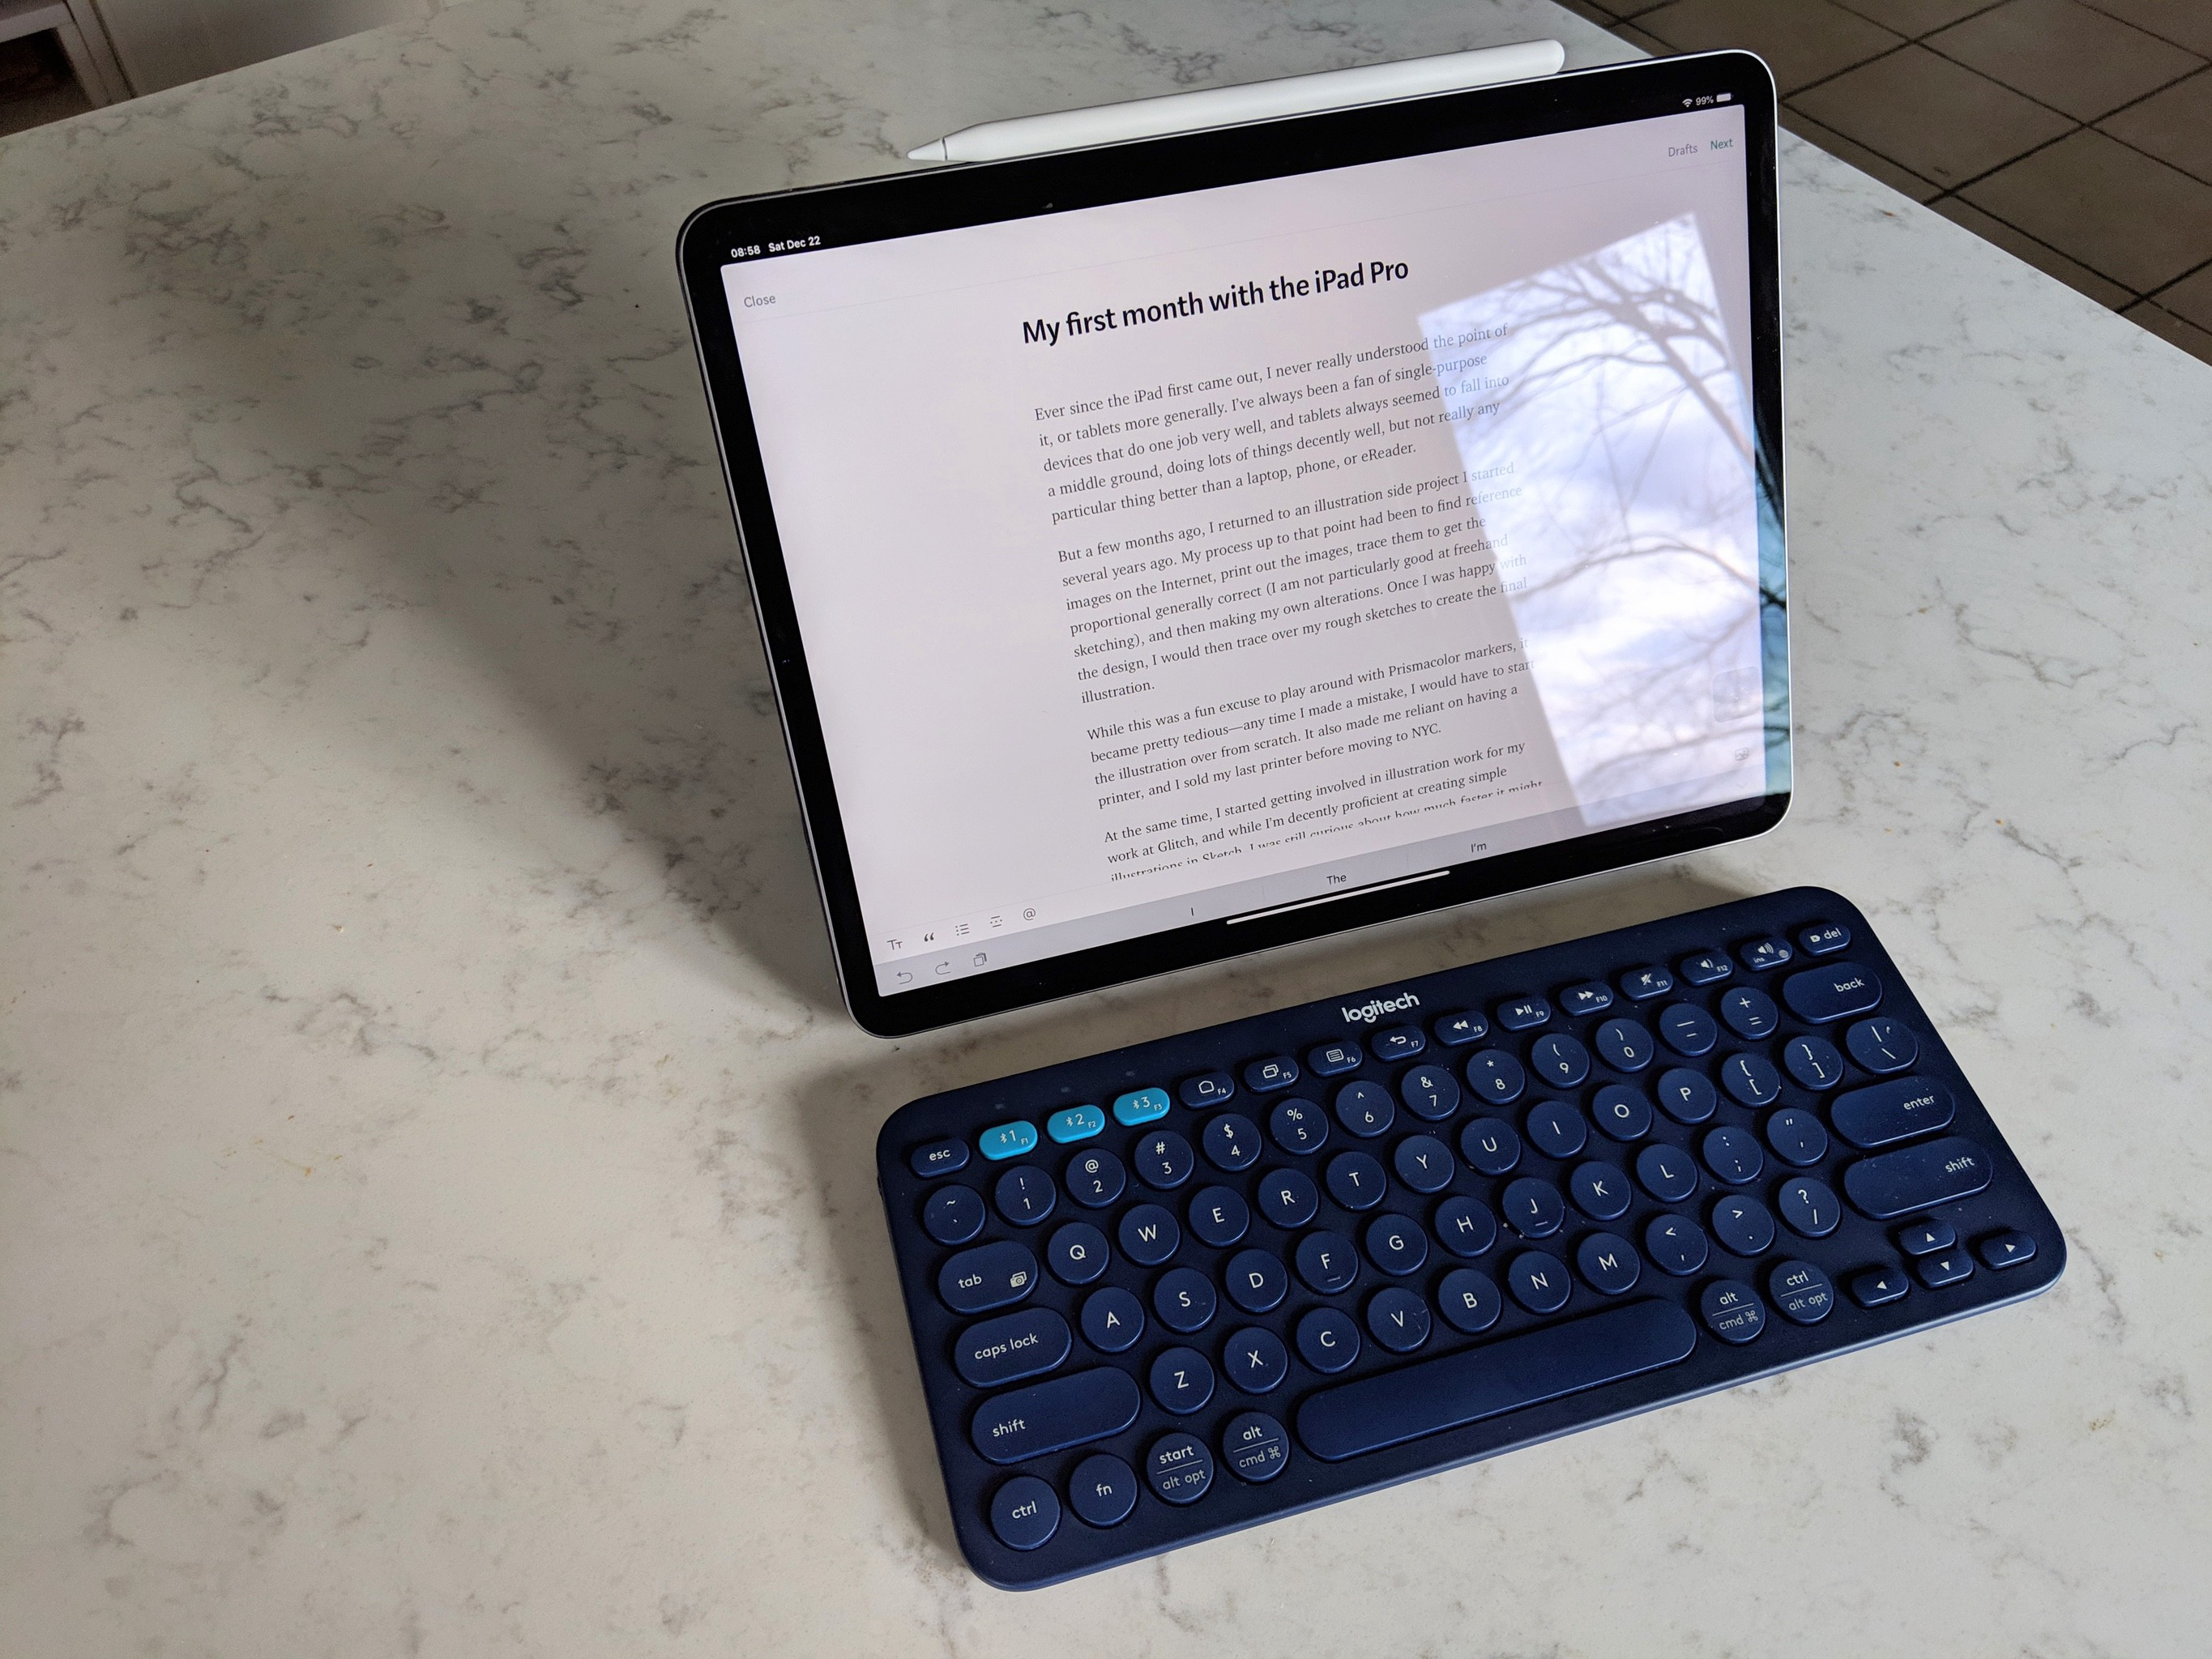 My first month with the iPad Pro - Tiffany Tseng - Medium